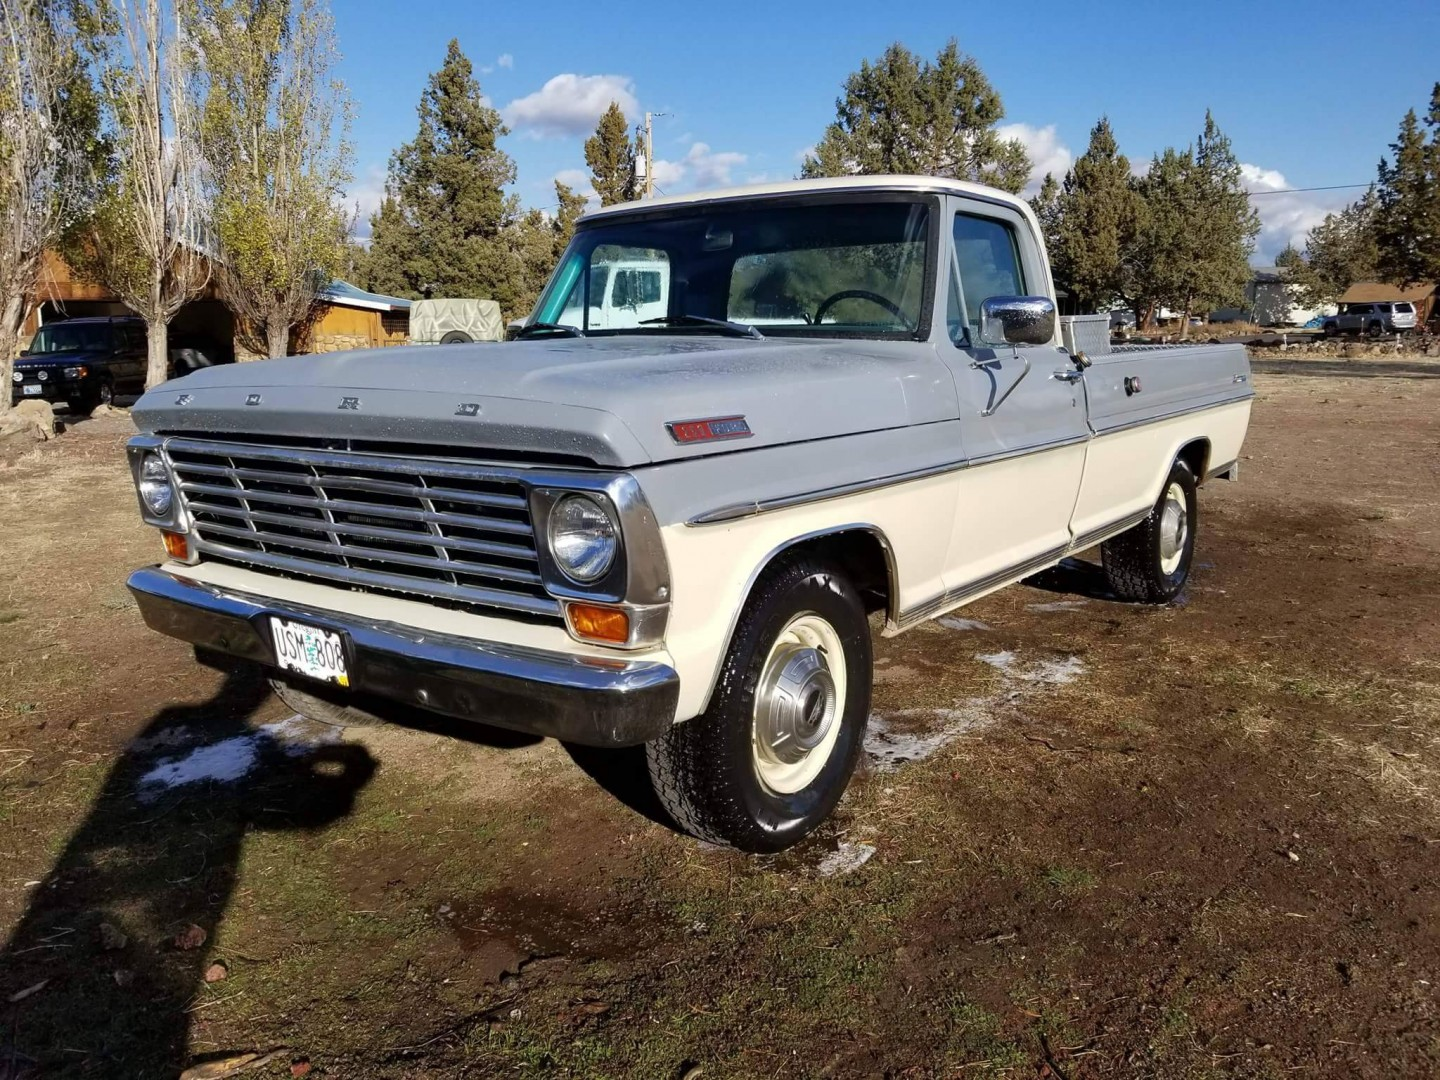 1967 Ford F250 300ci straight six (17)